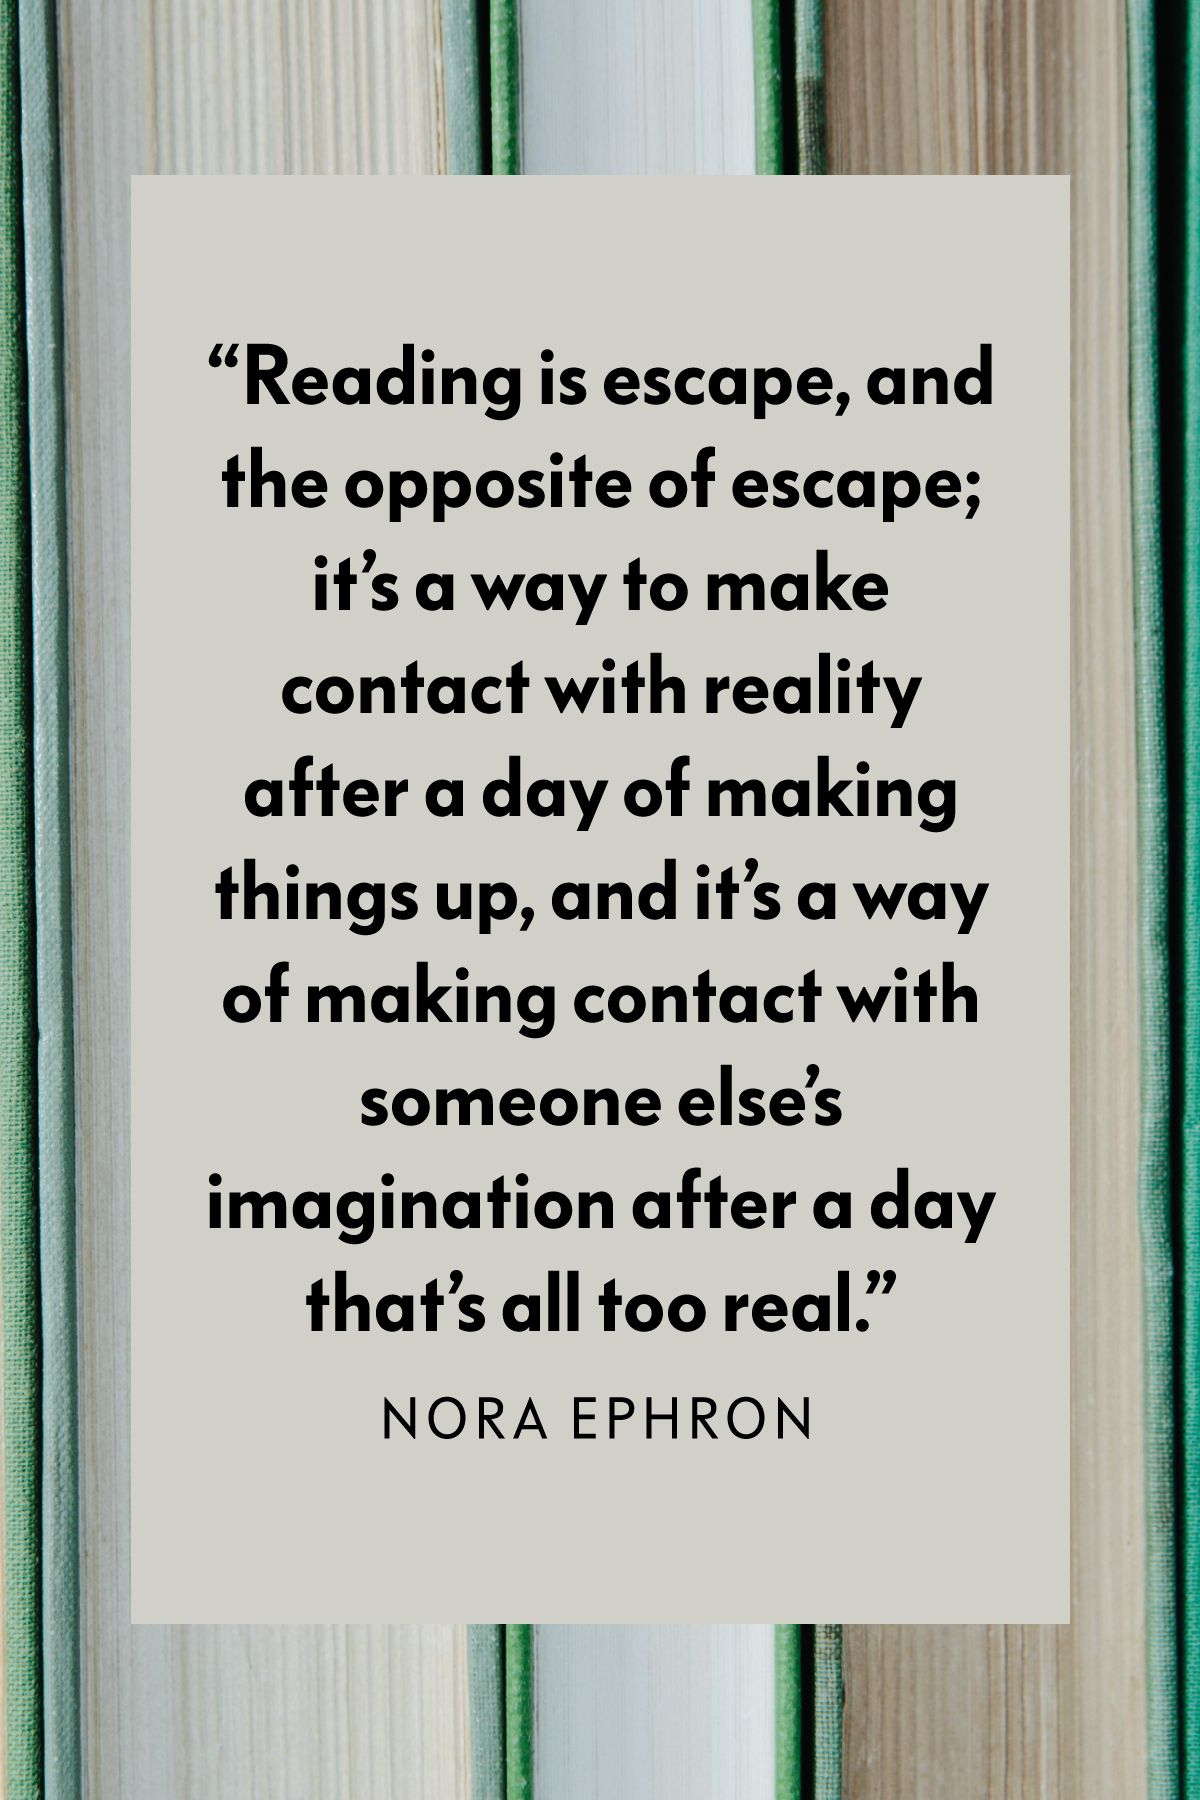 Reading Quote of the Month